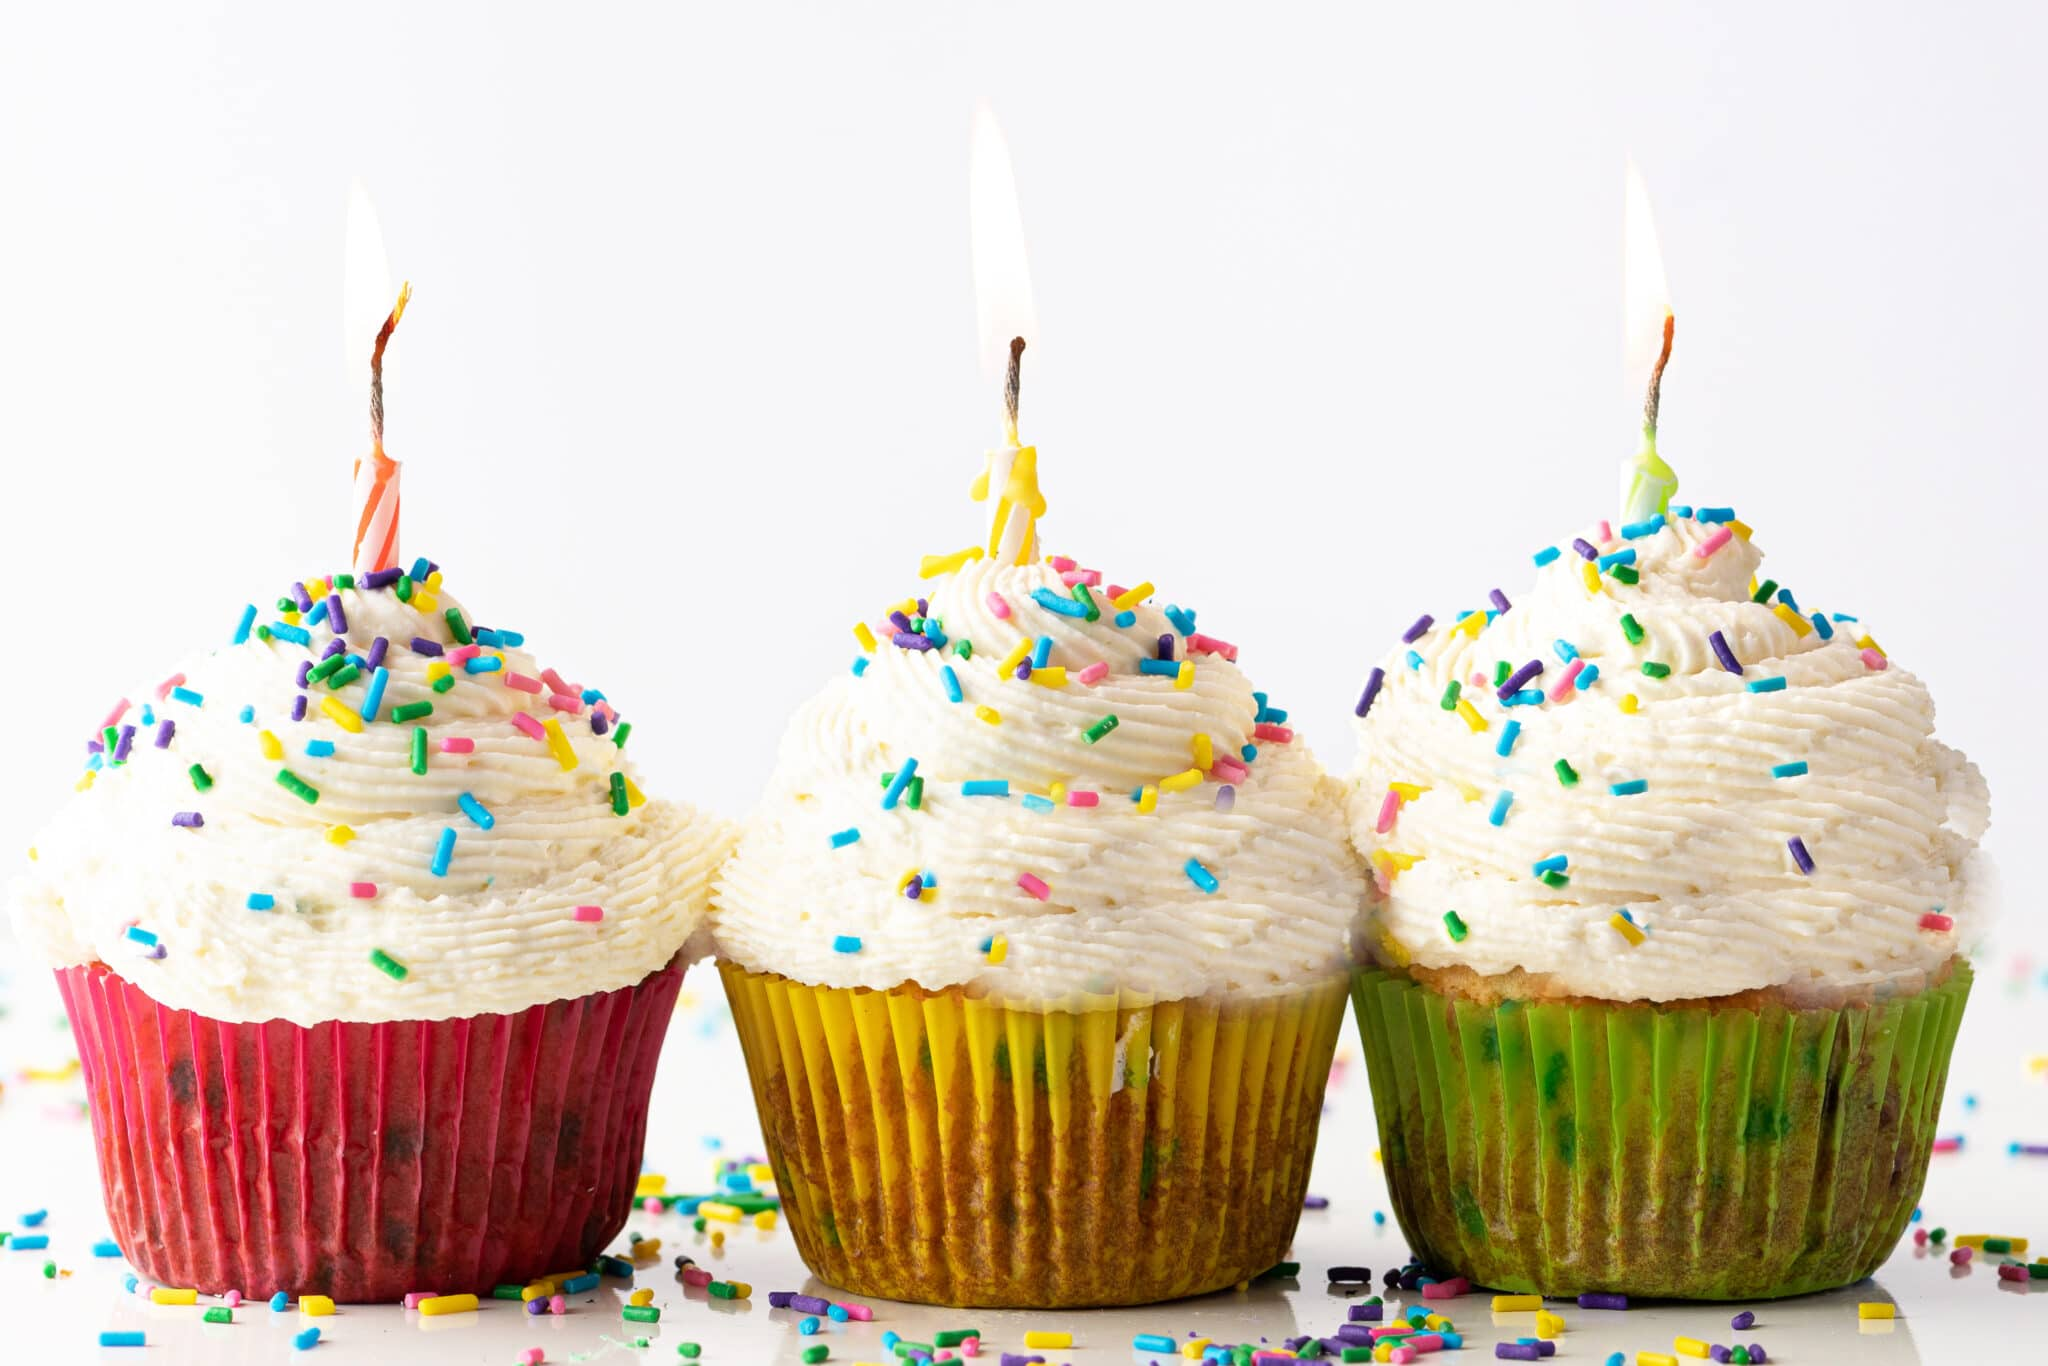 Three vanilla frosted cupcakes in colorful cupcake wrappers.  The cupcakes have cheerful sprinkles and lit birthday candles.